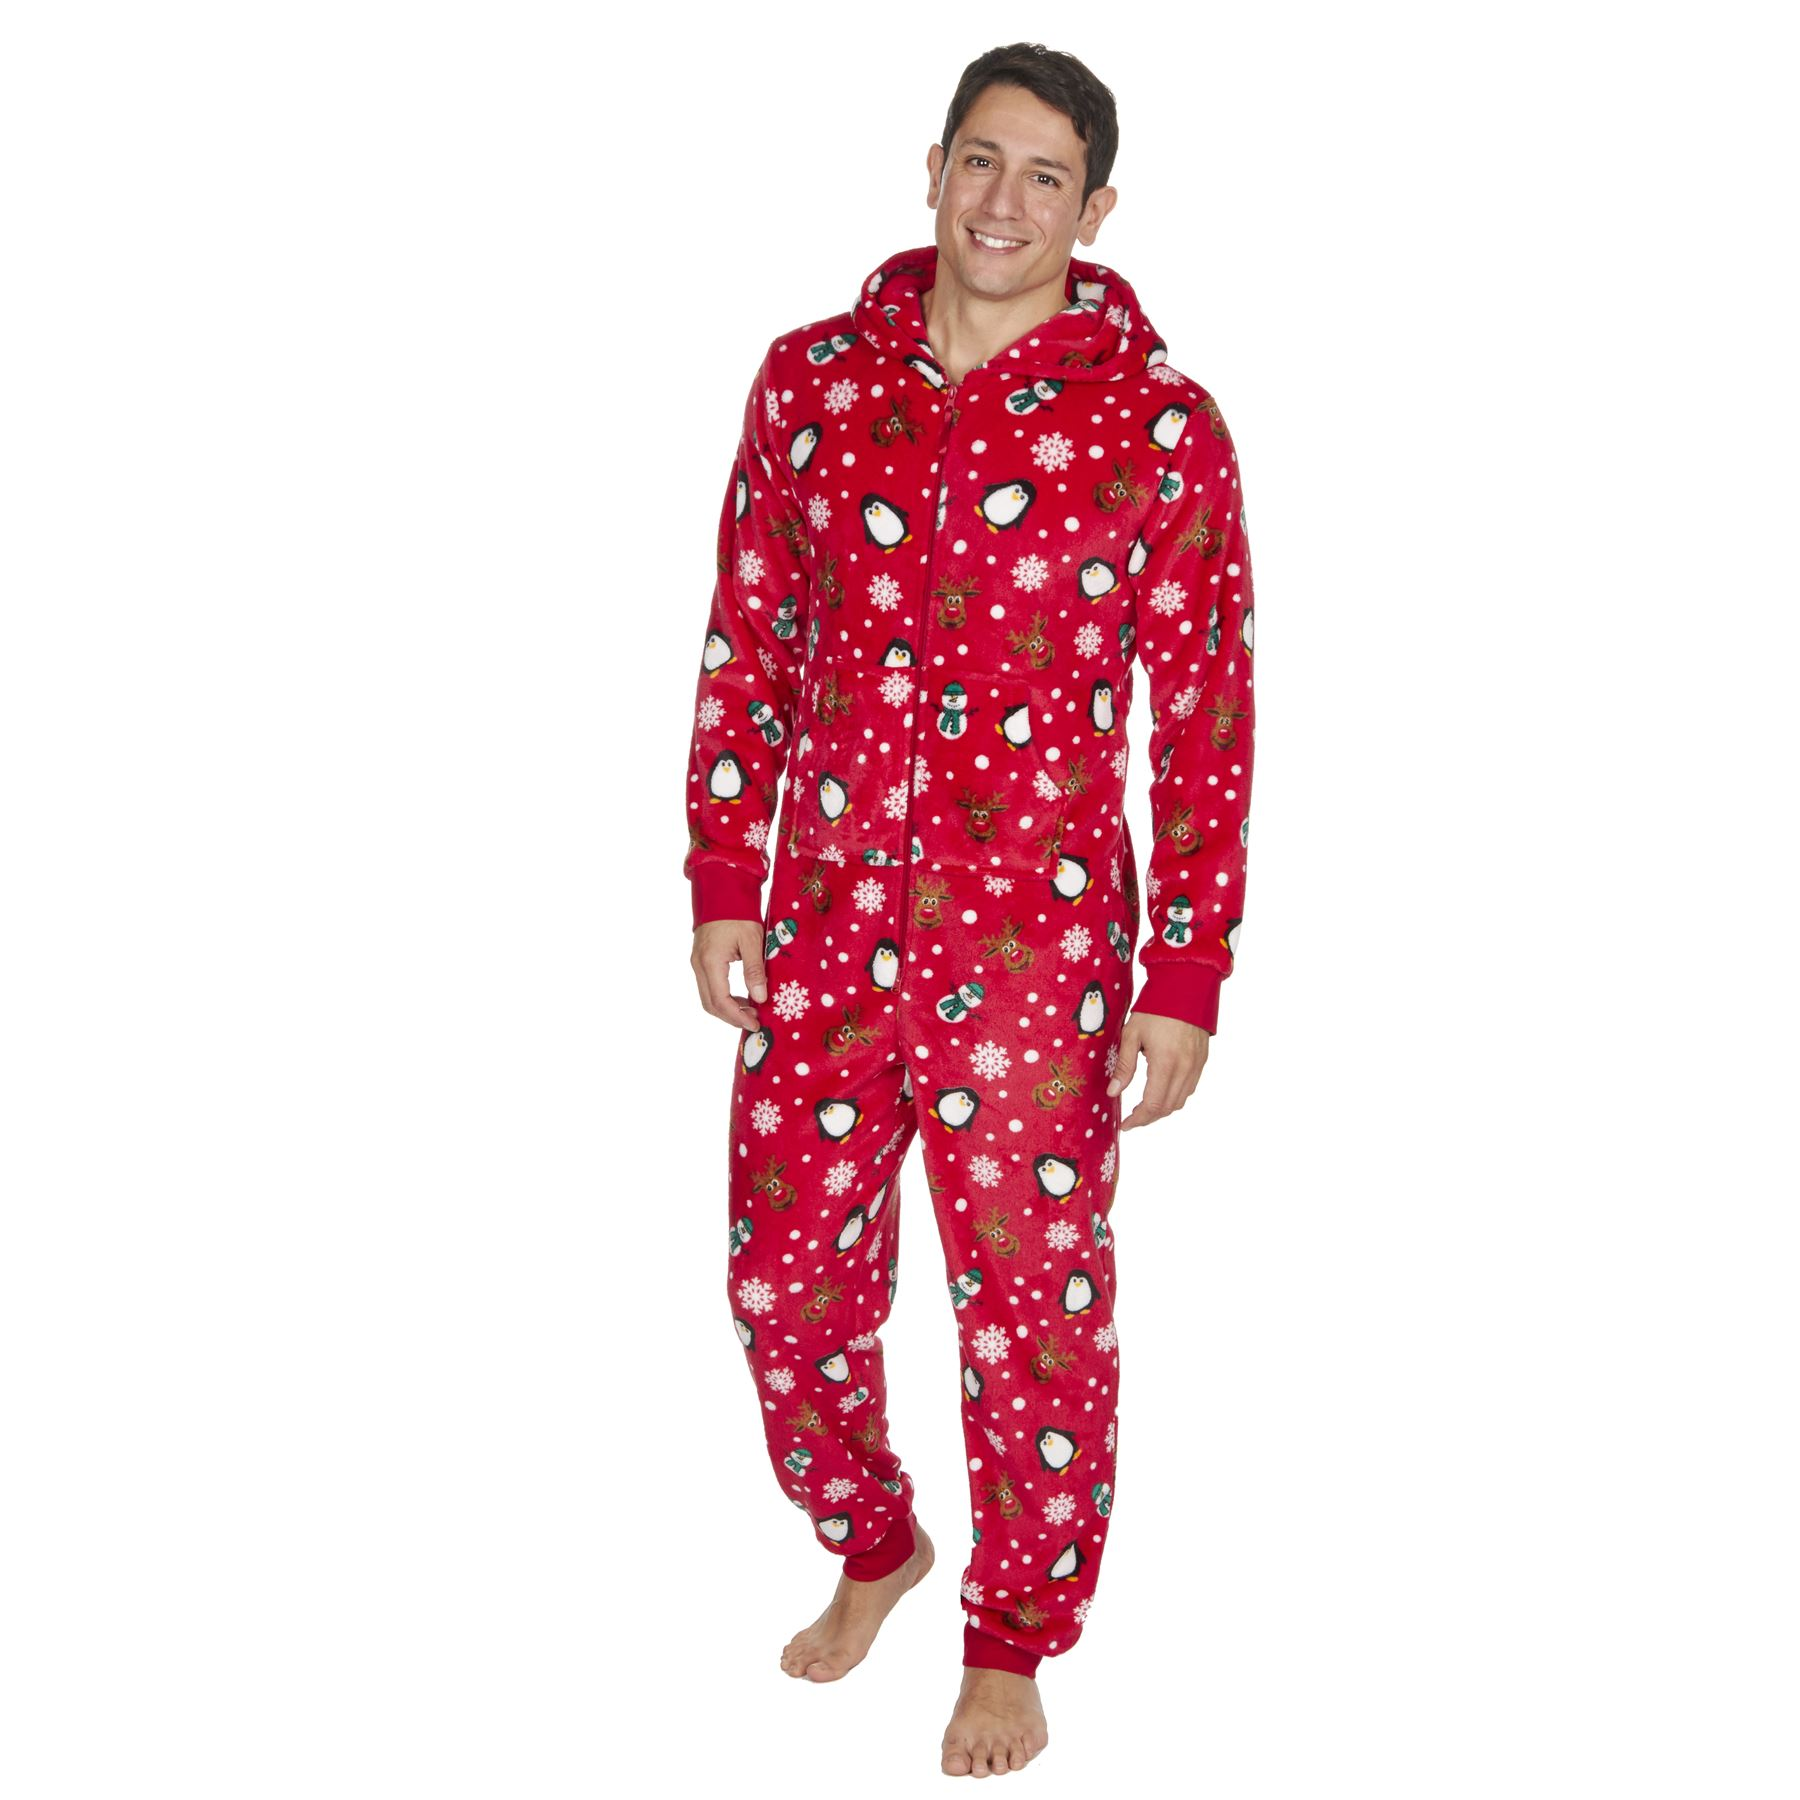 Ladies-Womens-Girls-Fleece-All-In-One-Pyjamas-Outfit-Jumpsuit-Costume-Size-6-18 thumbnail 56